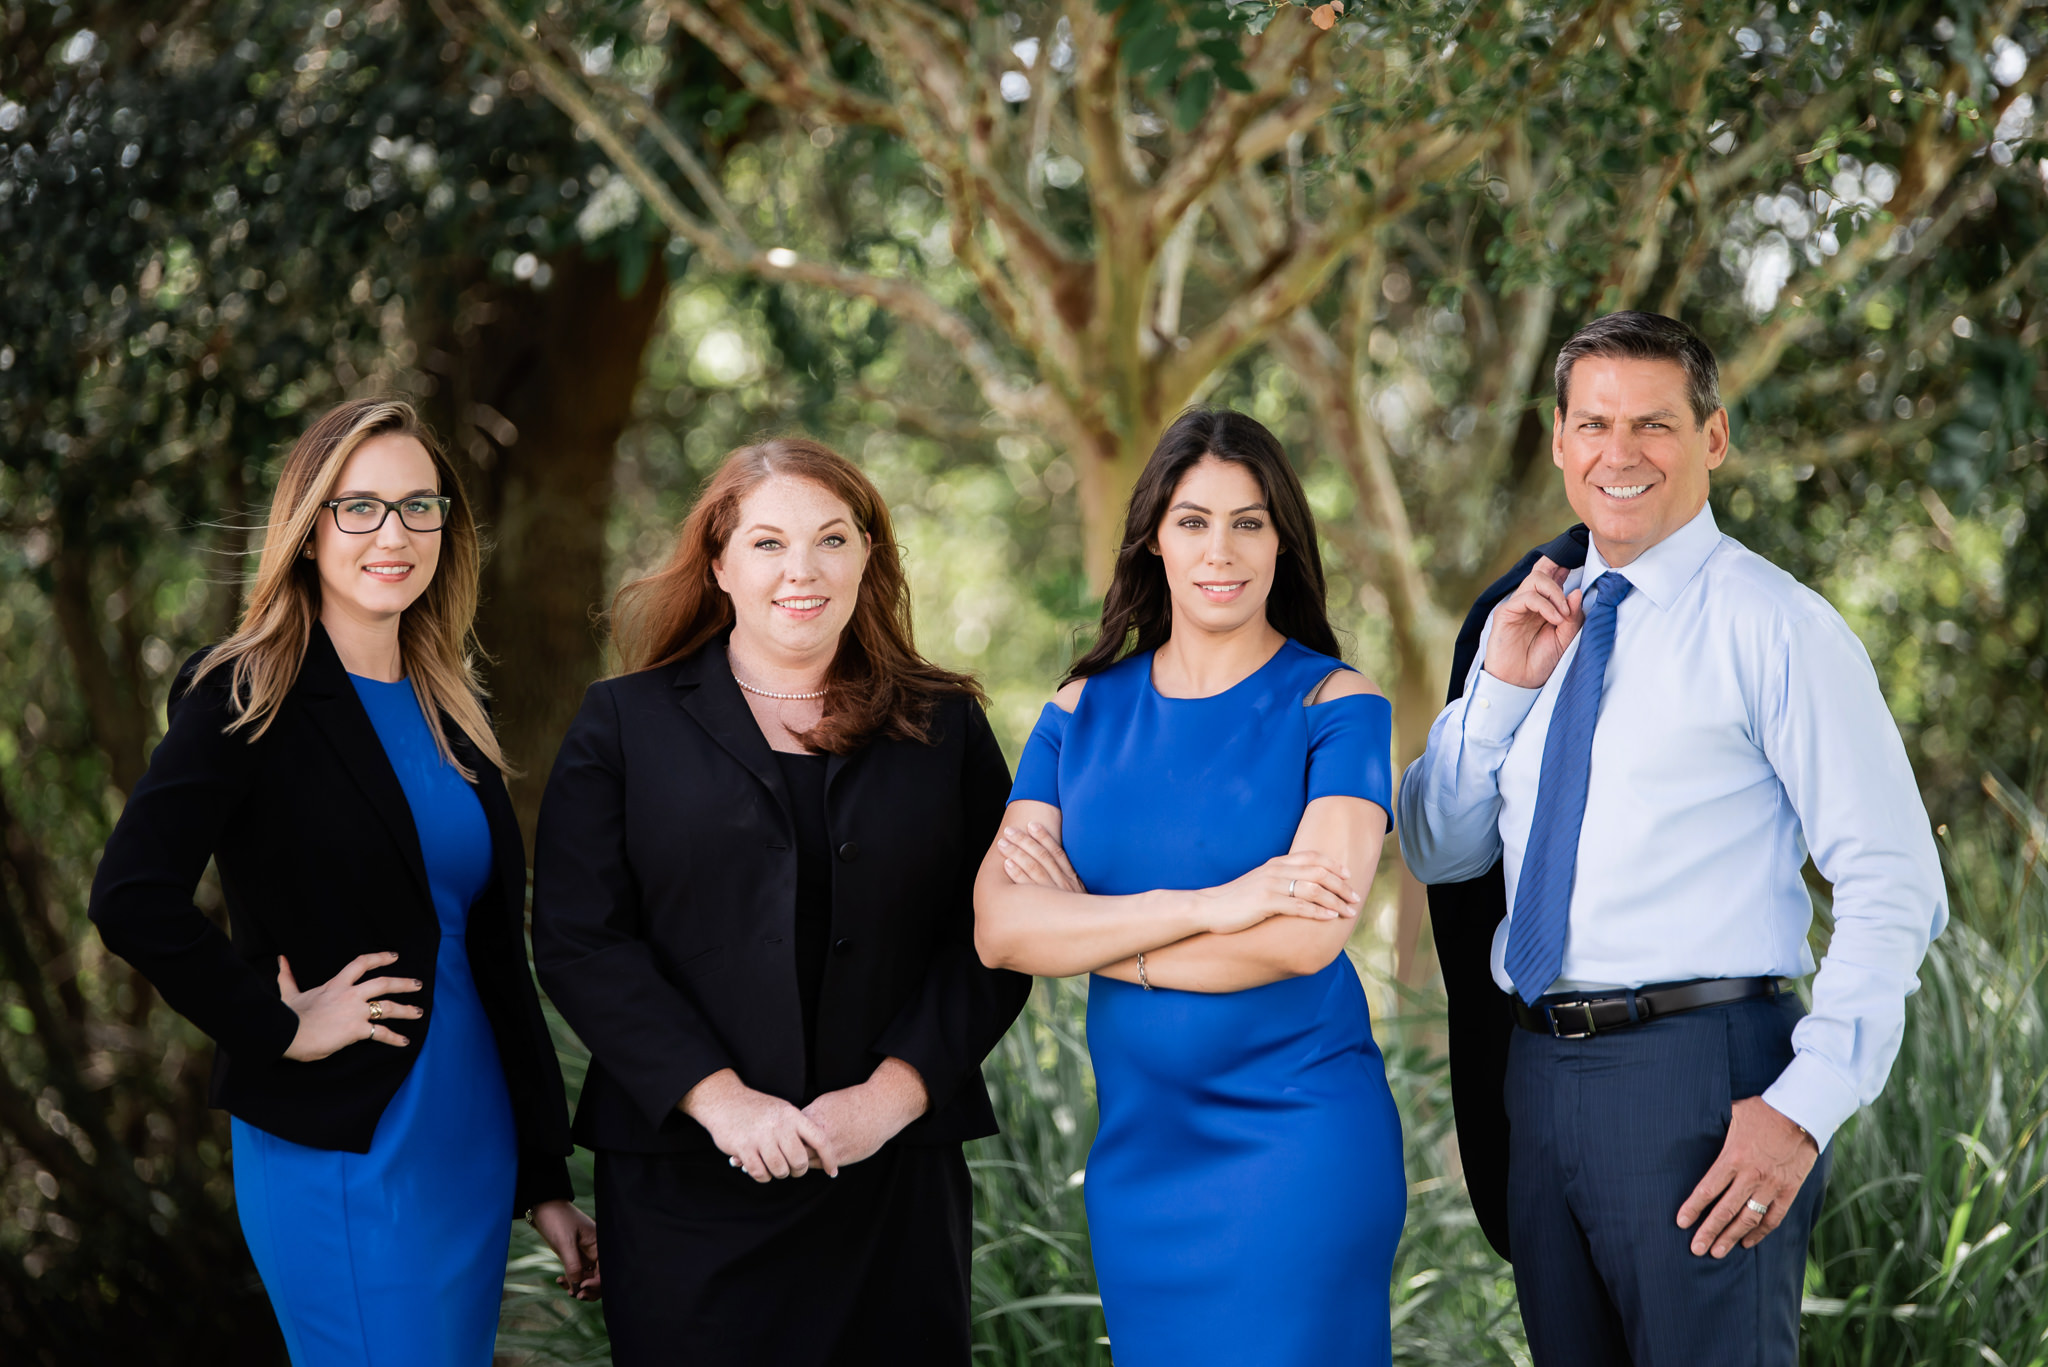 CHAPMAN_LAW_GROU_SARASOTA_HEADSHOT_PHOTOGRAPHER_4682.jpg